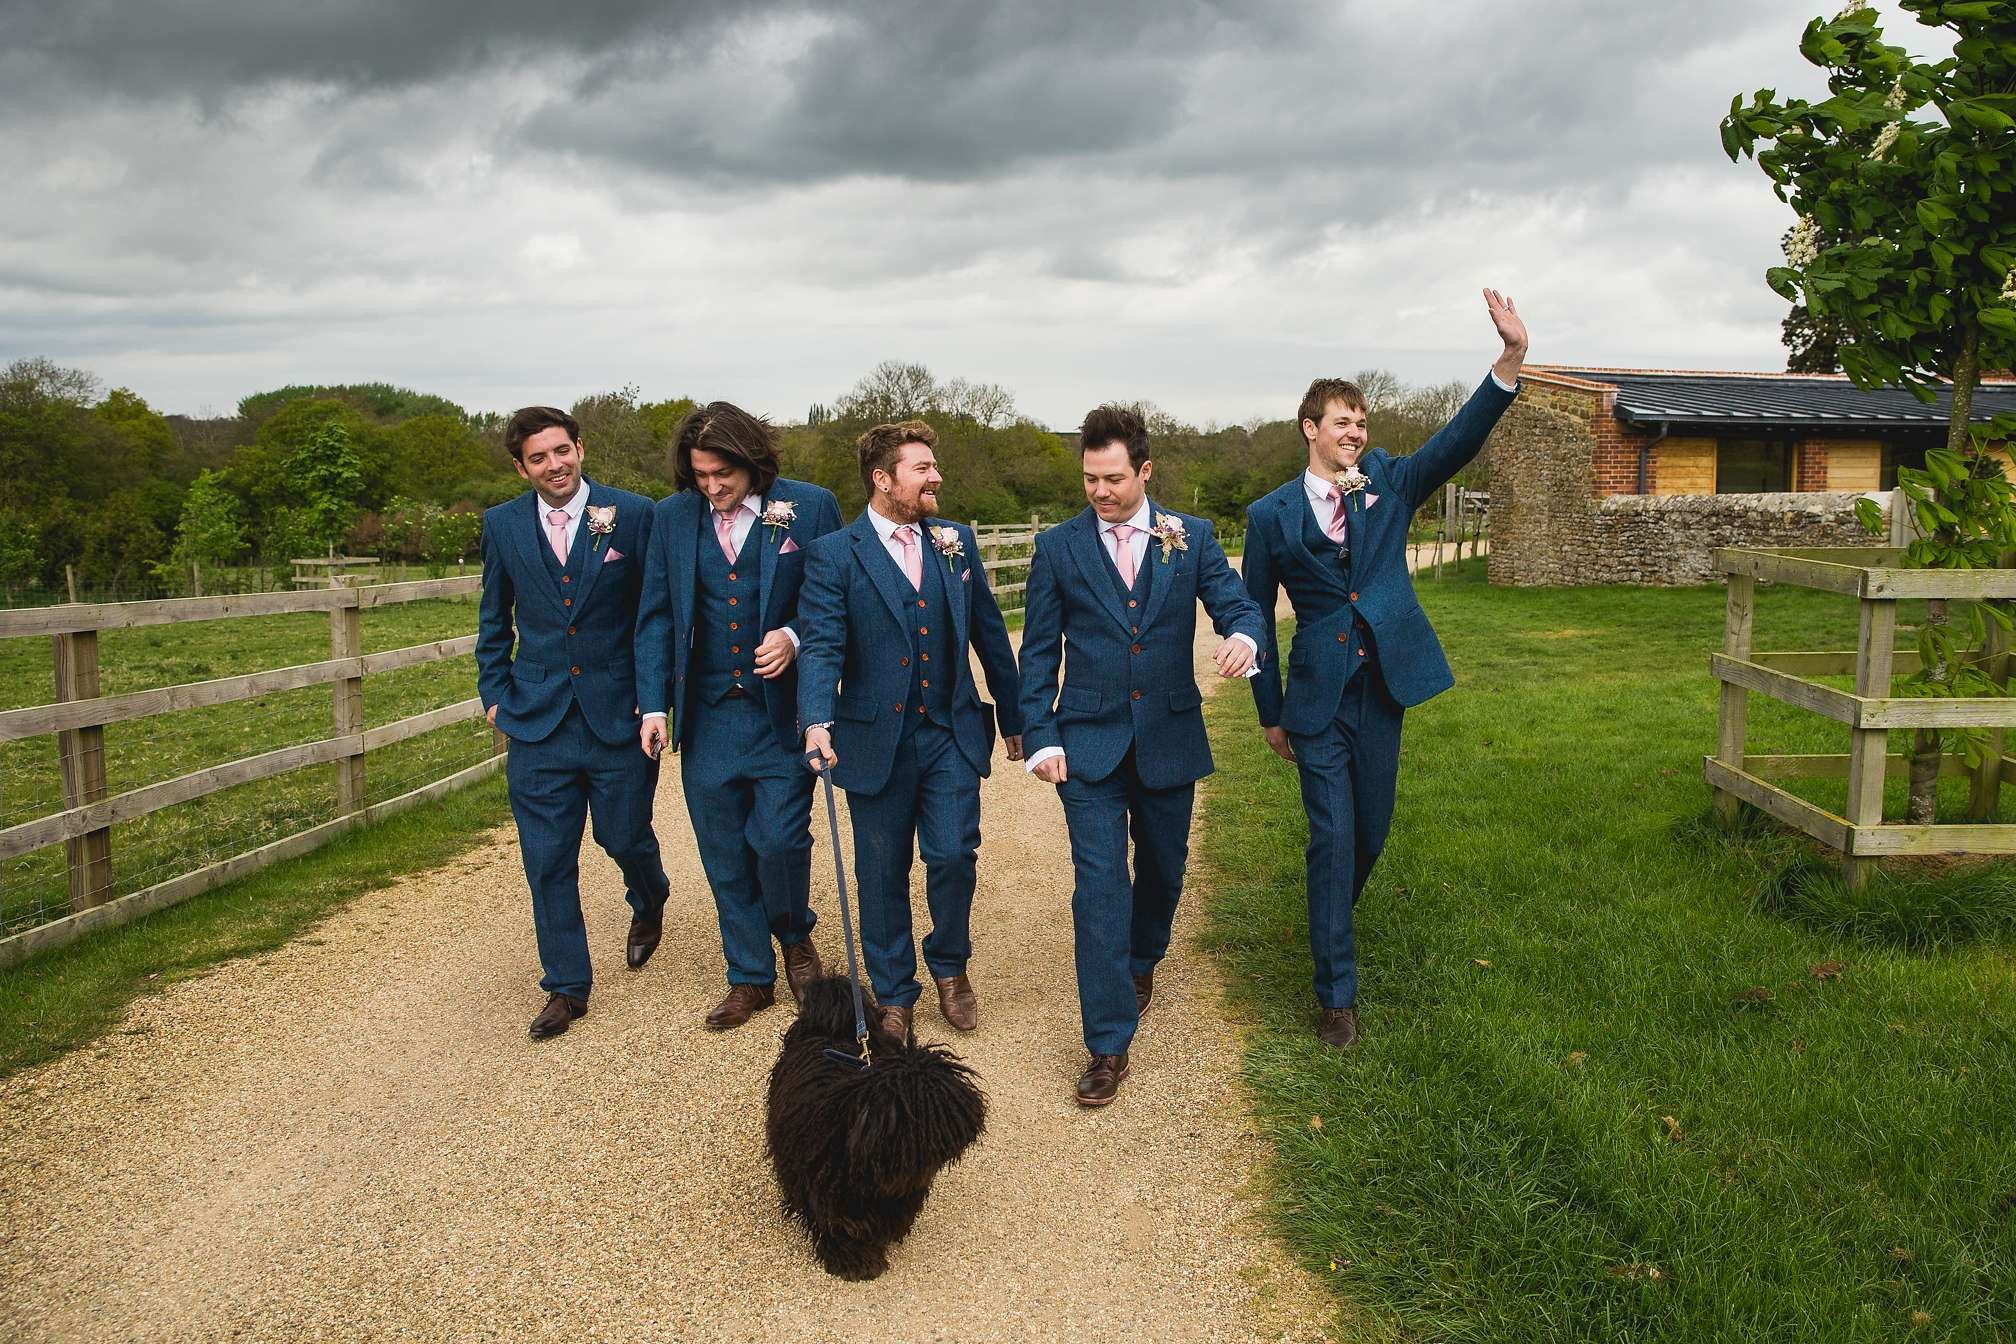 Groomsmen going for a walk